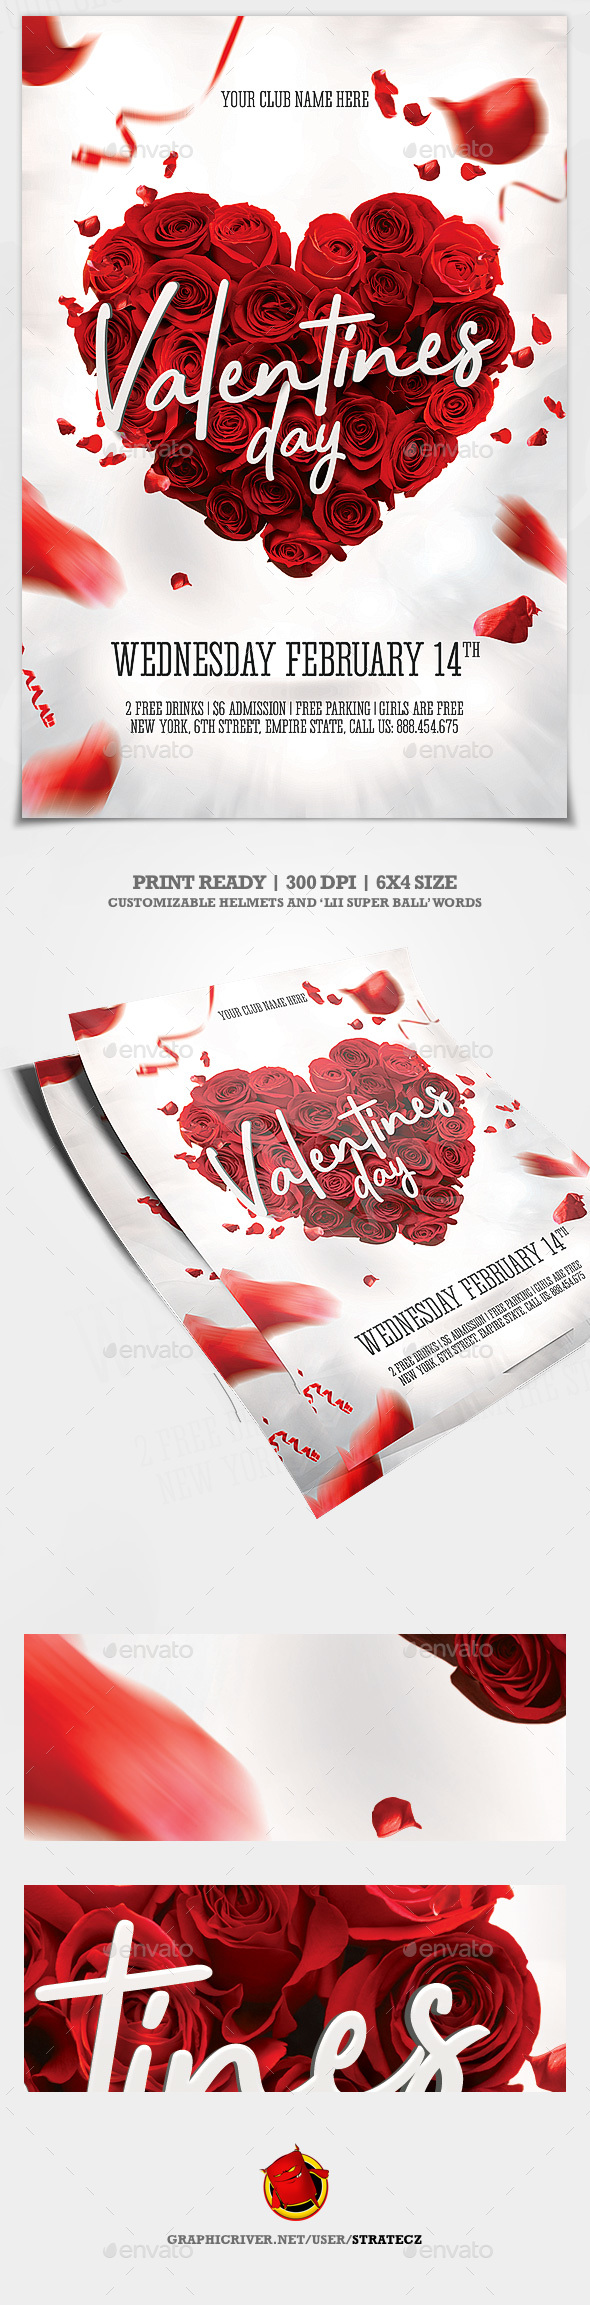 Valentines Day - Print Templates